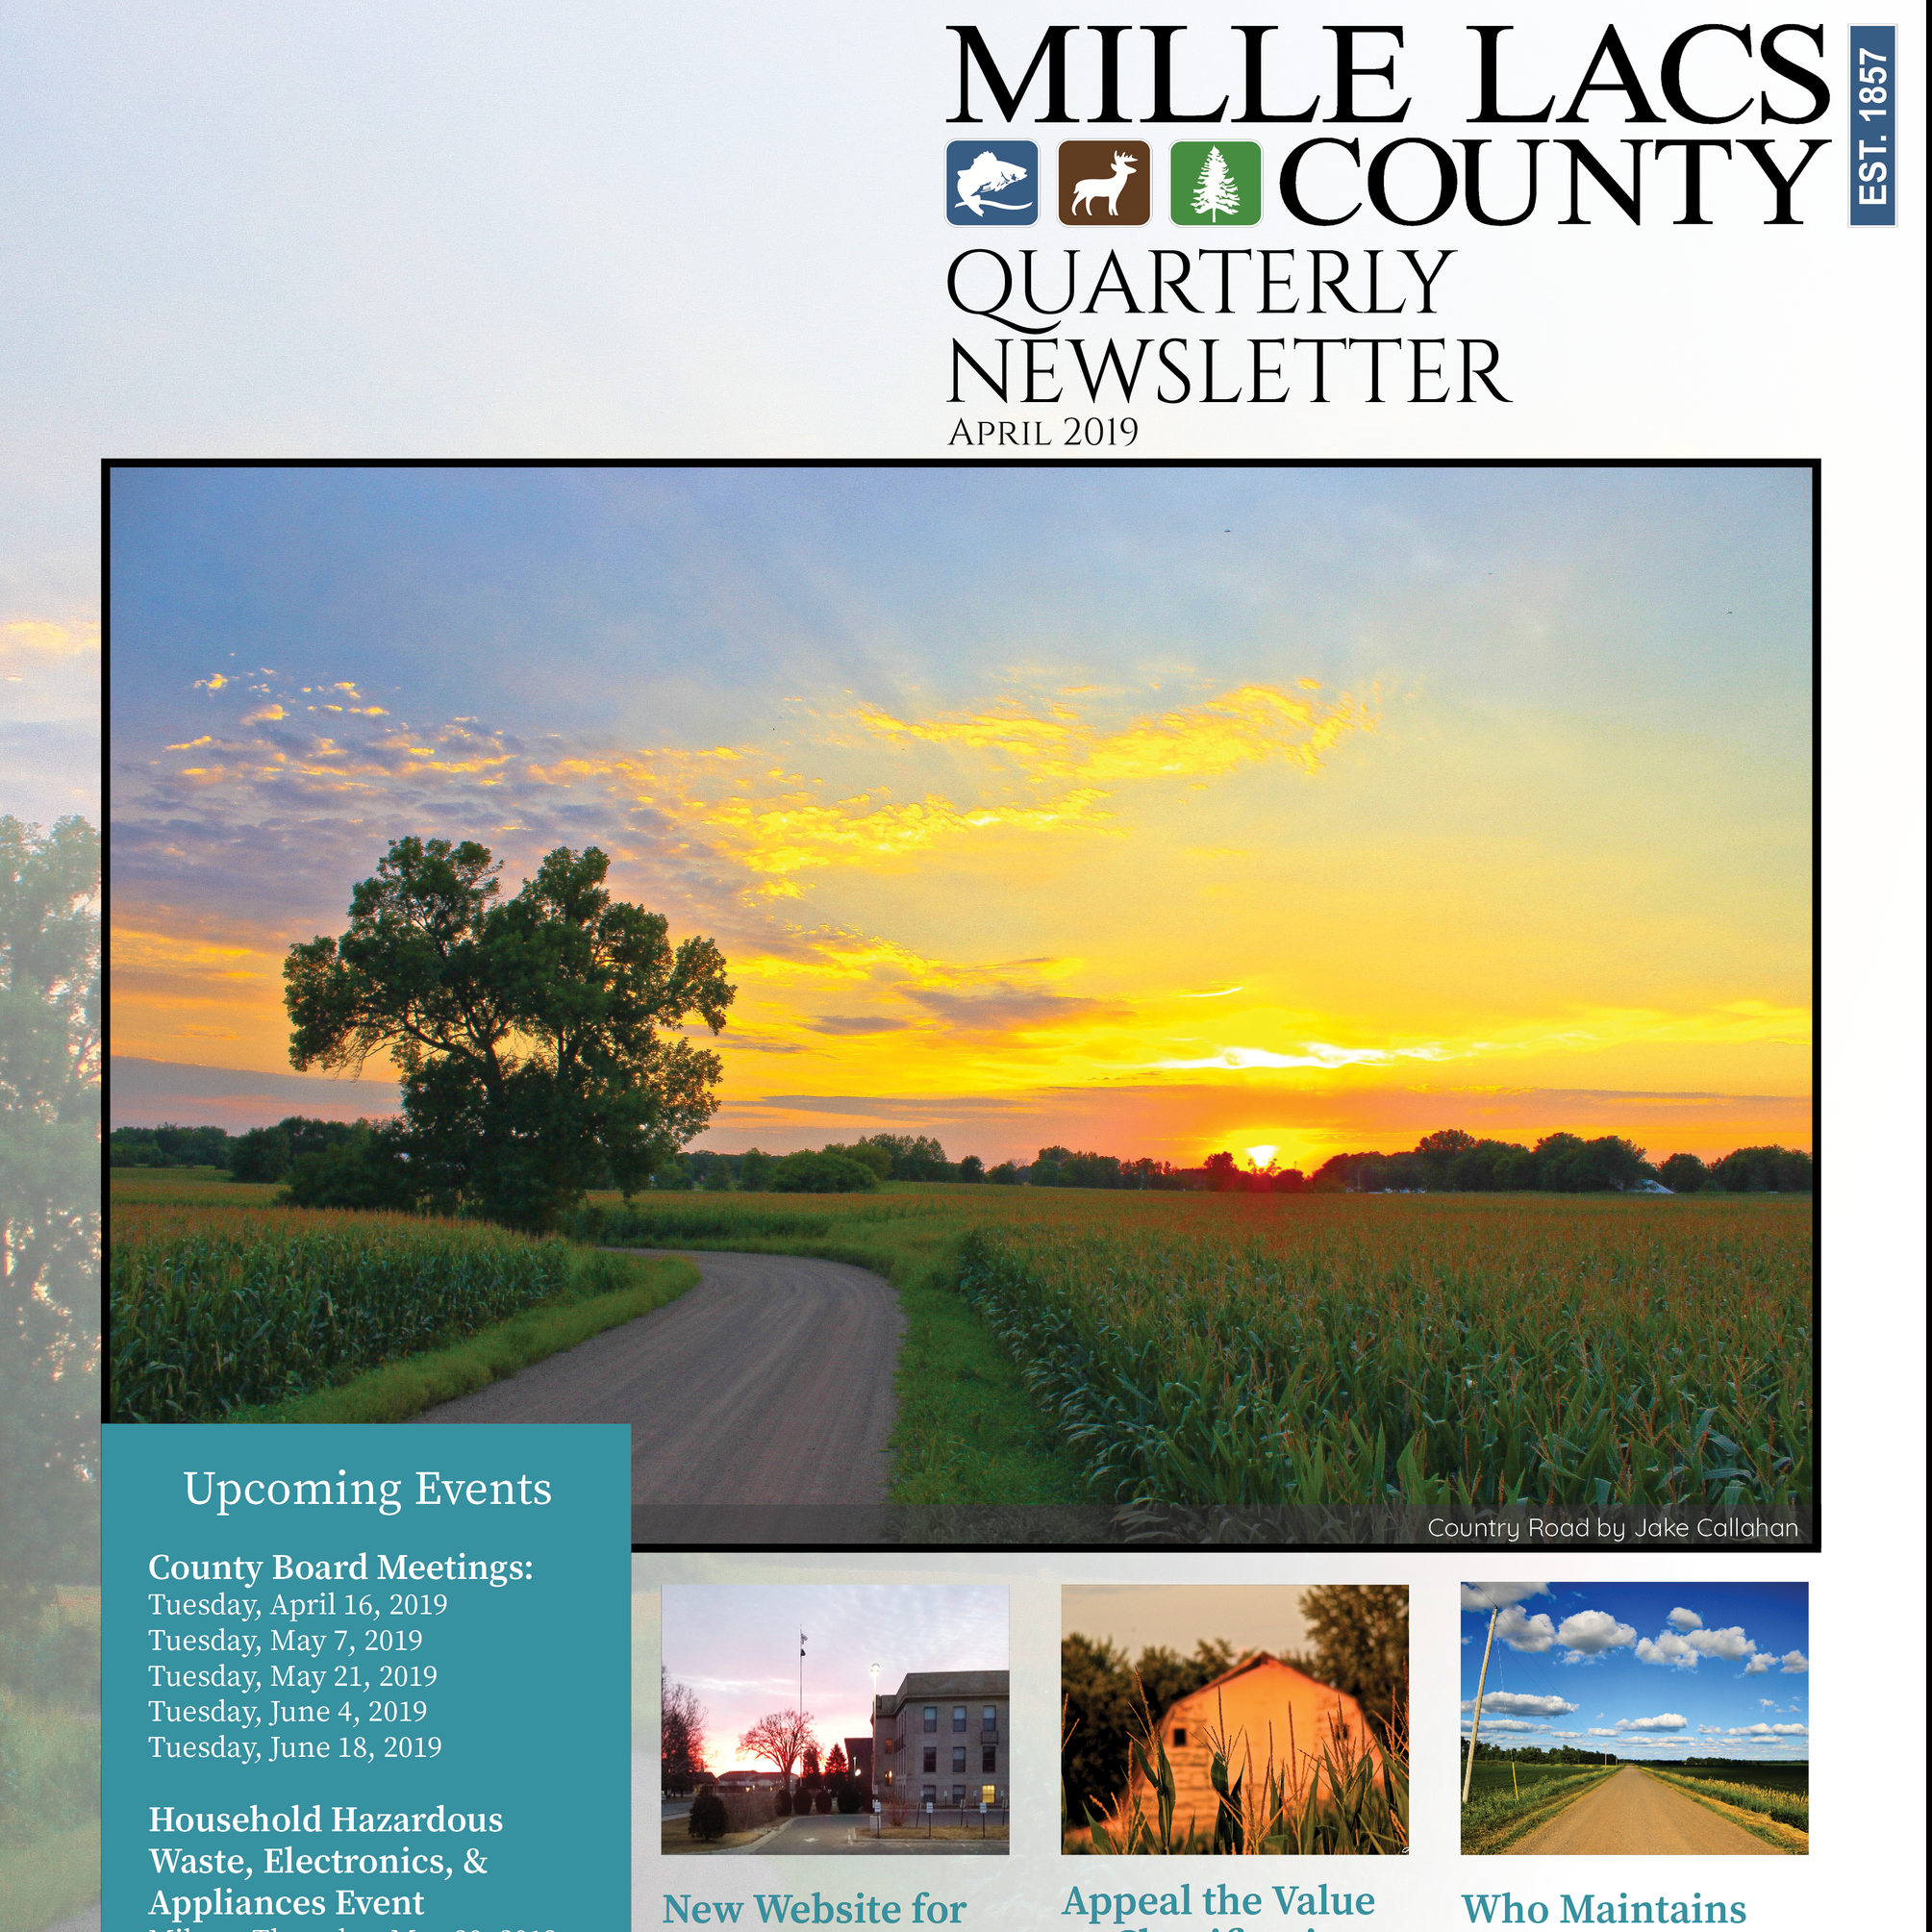 Front Cover of the April 2019 Mille Lacs County Quarterly Newsletter.